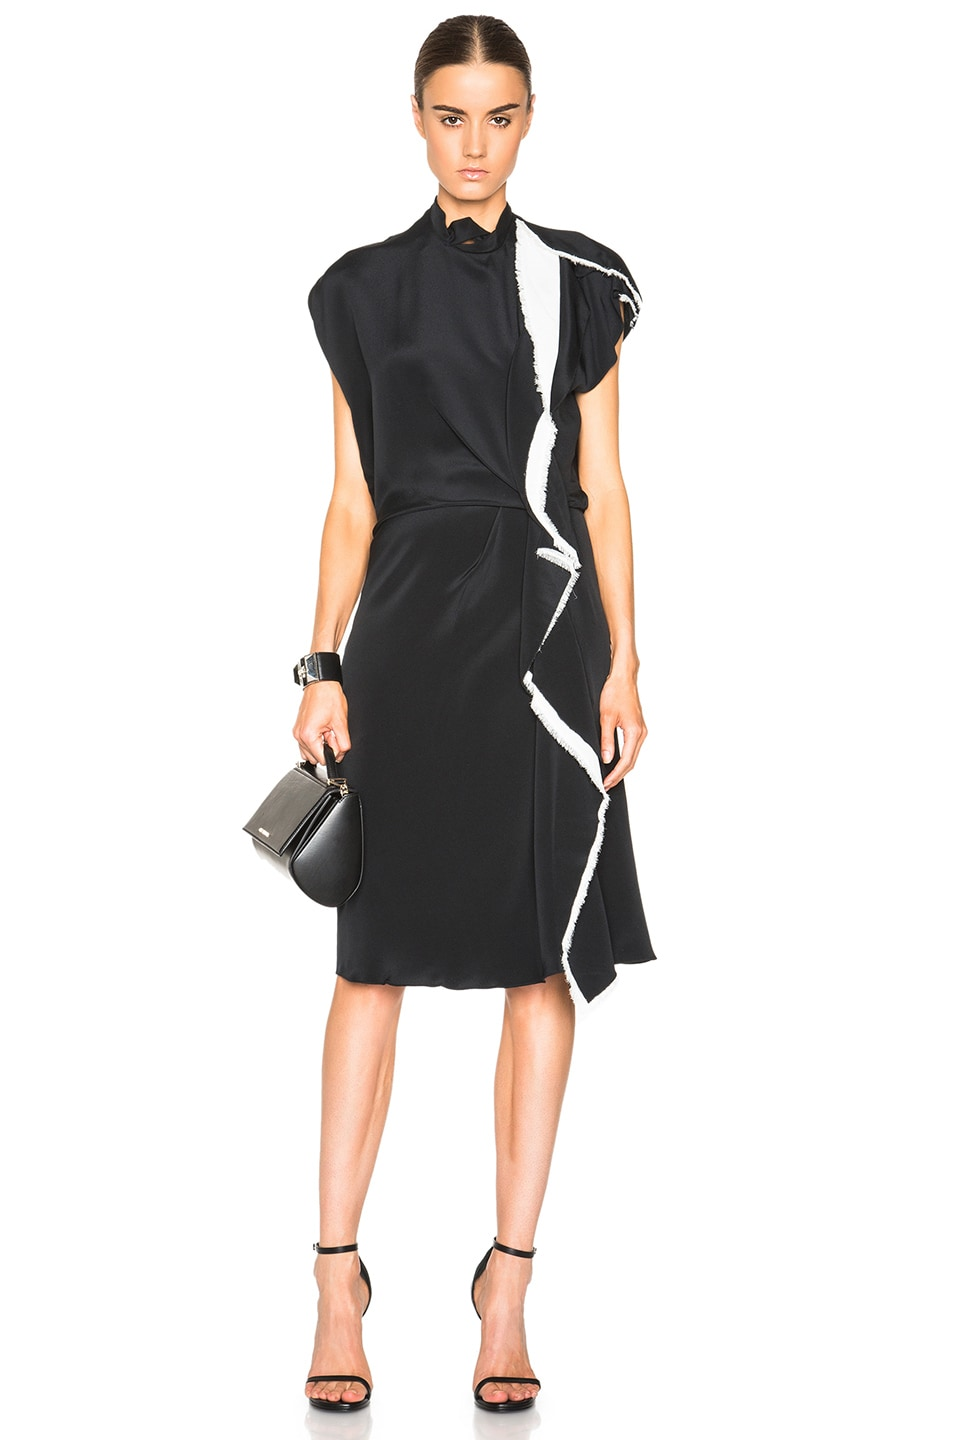 Image 1 Of 3 Phillip Lim Distorted Ruffle Dress In Black